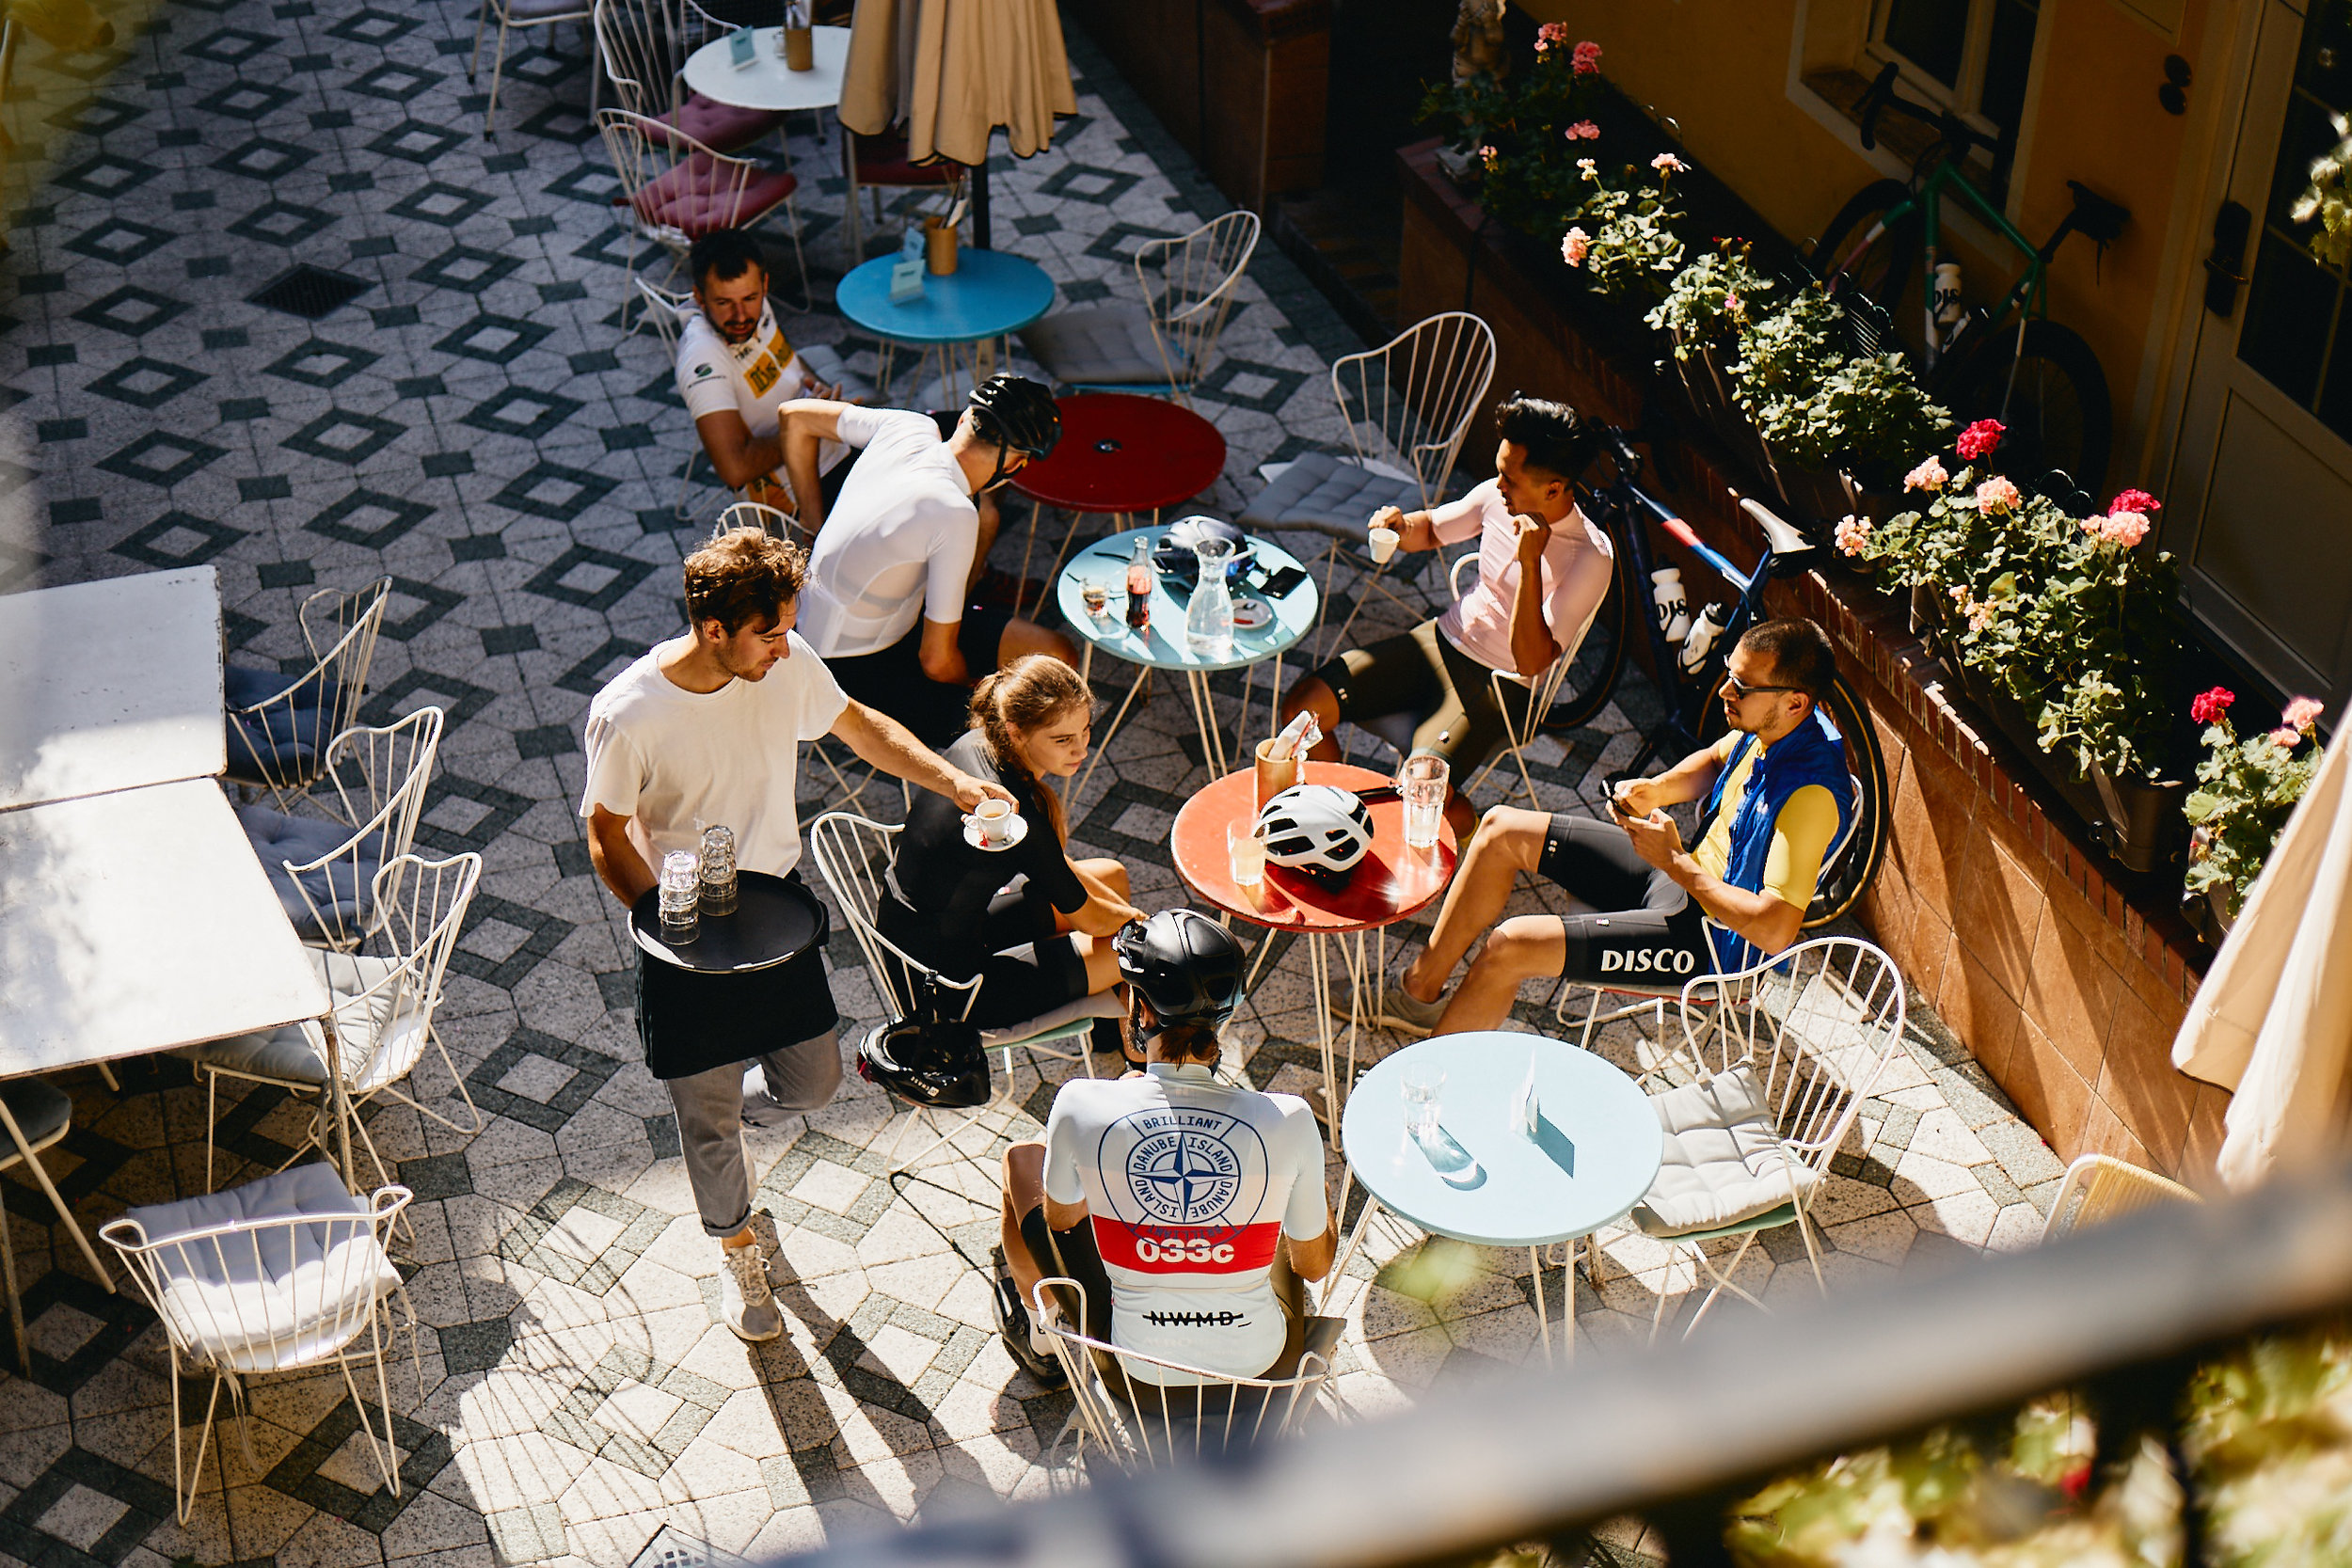 The courtyard of the Brillantengrund is a popular meeting place for cyclists and hotel guests alike